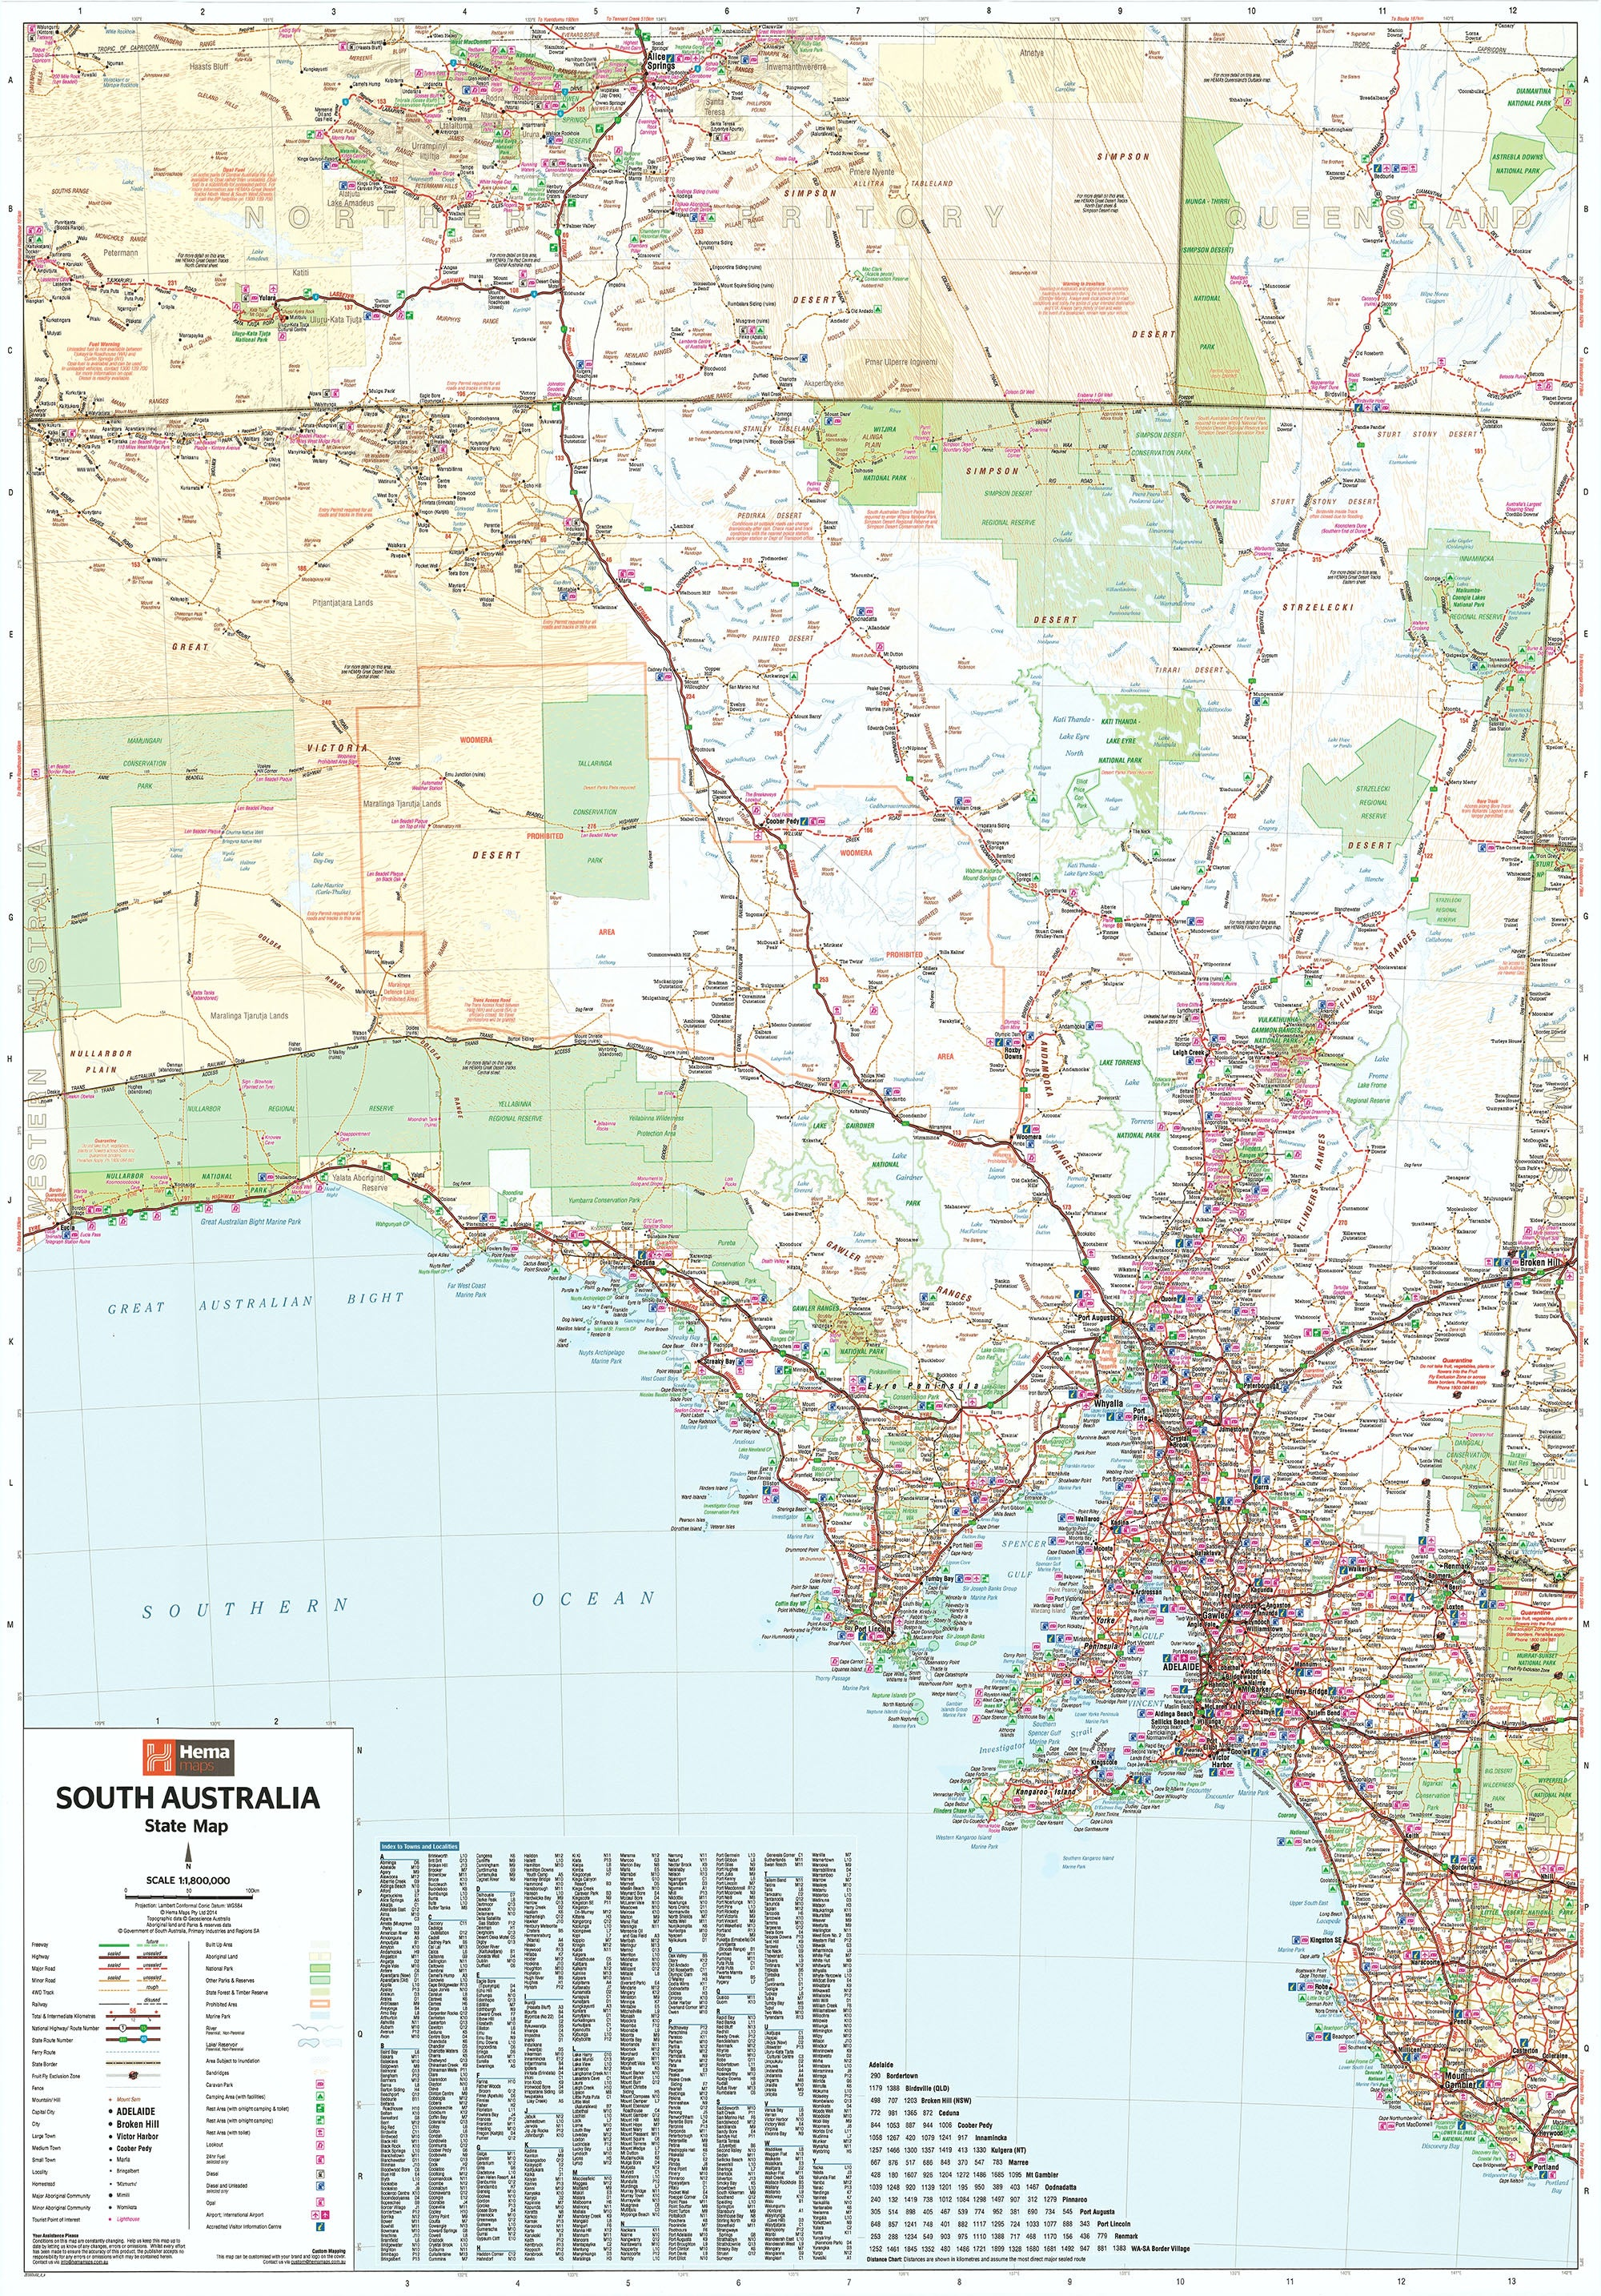 Map Of Southern Australia.South Australia Hema 1000 X 1400mm Supermap Laminated Wall Map